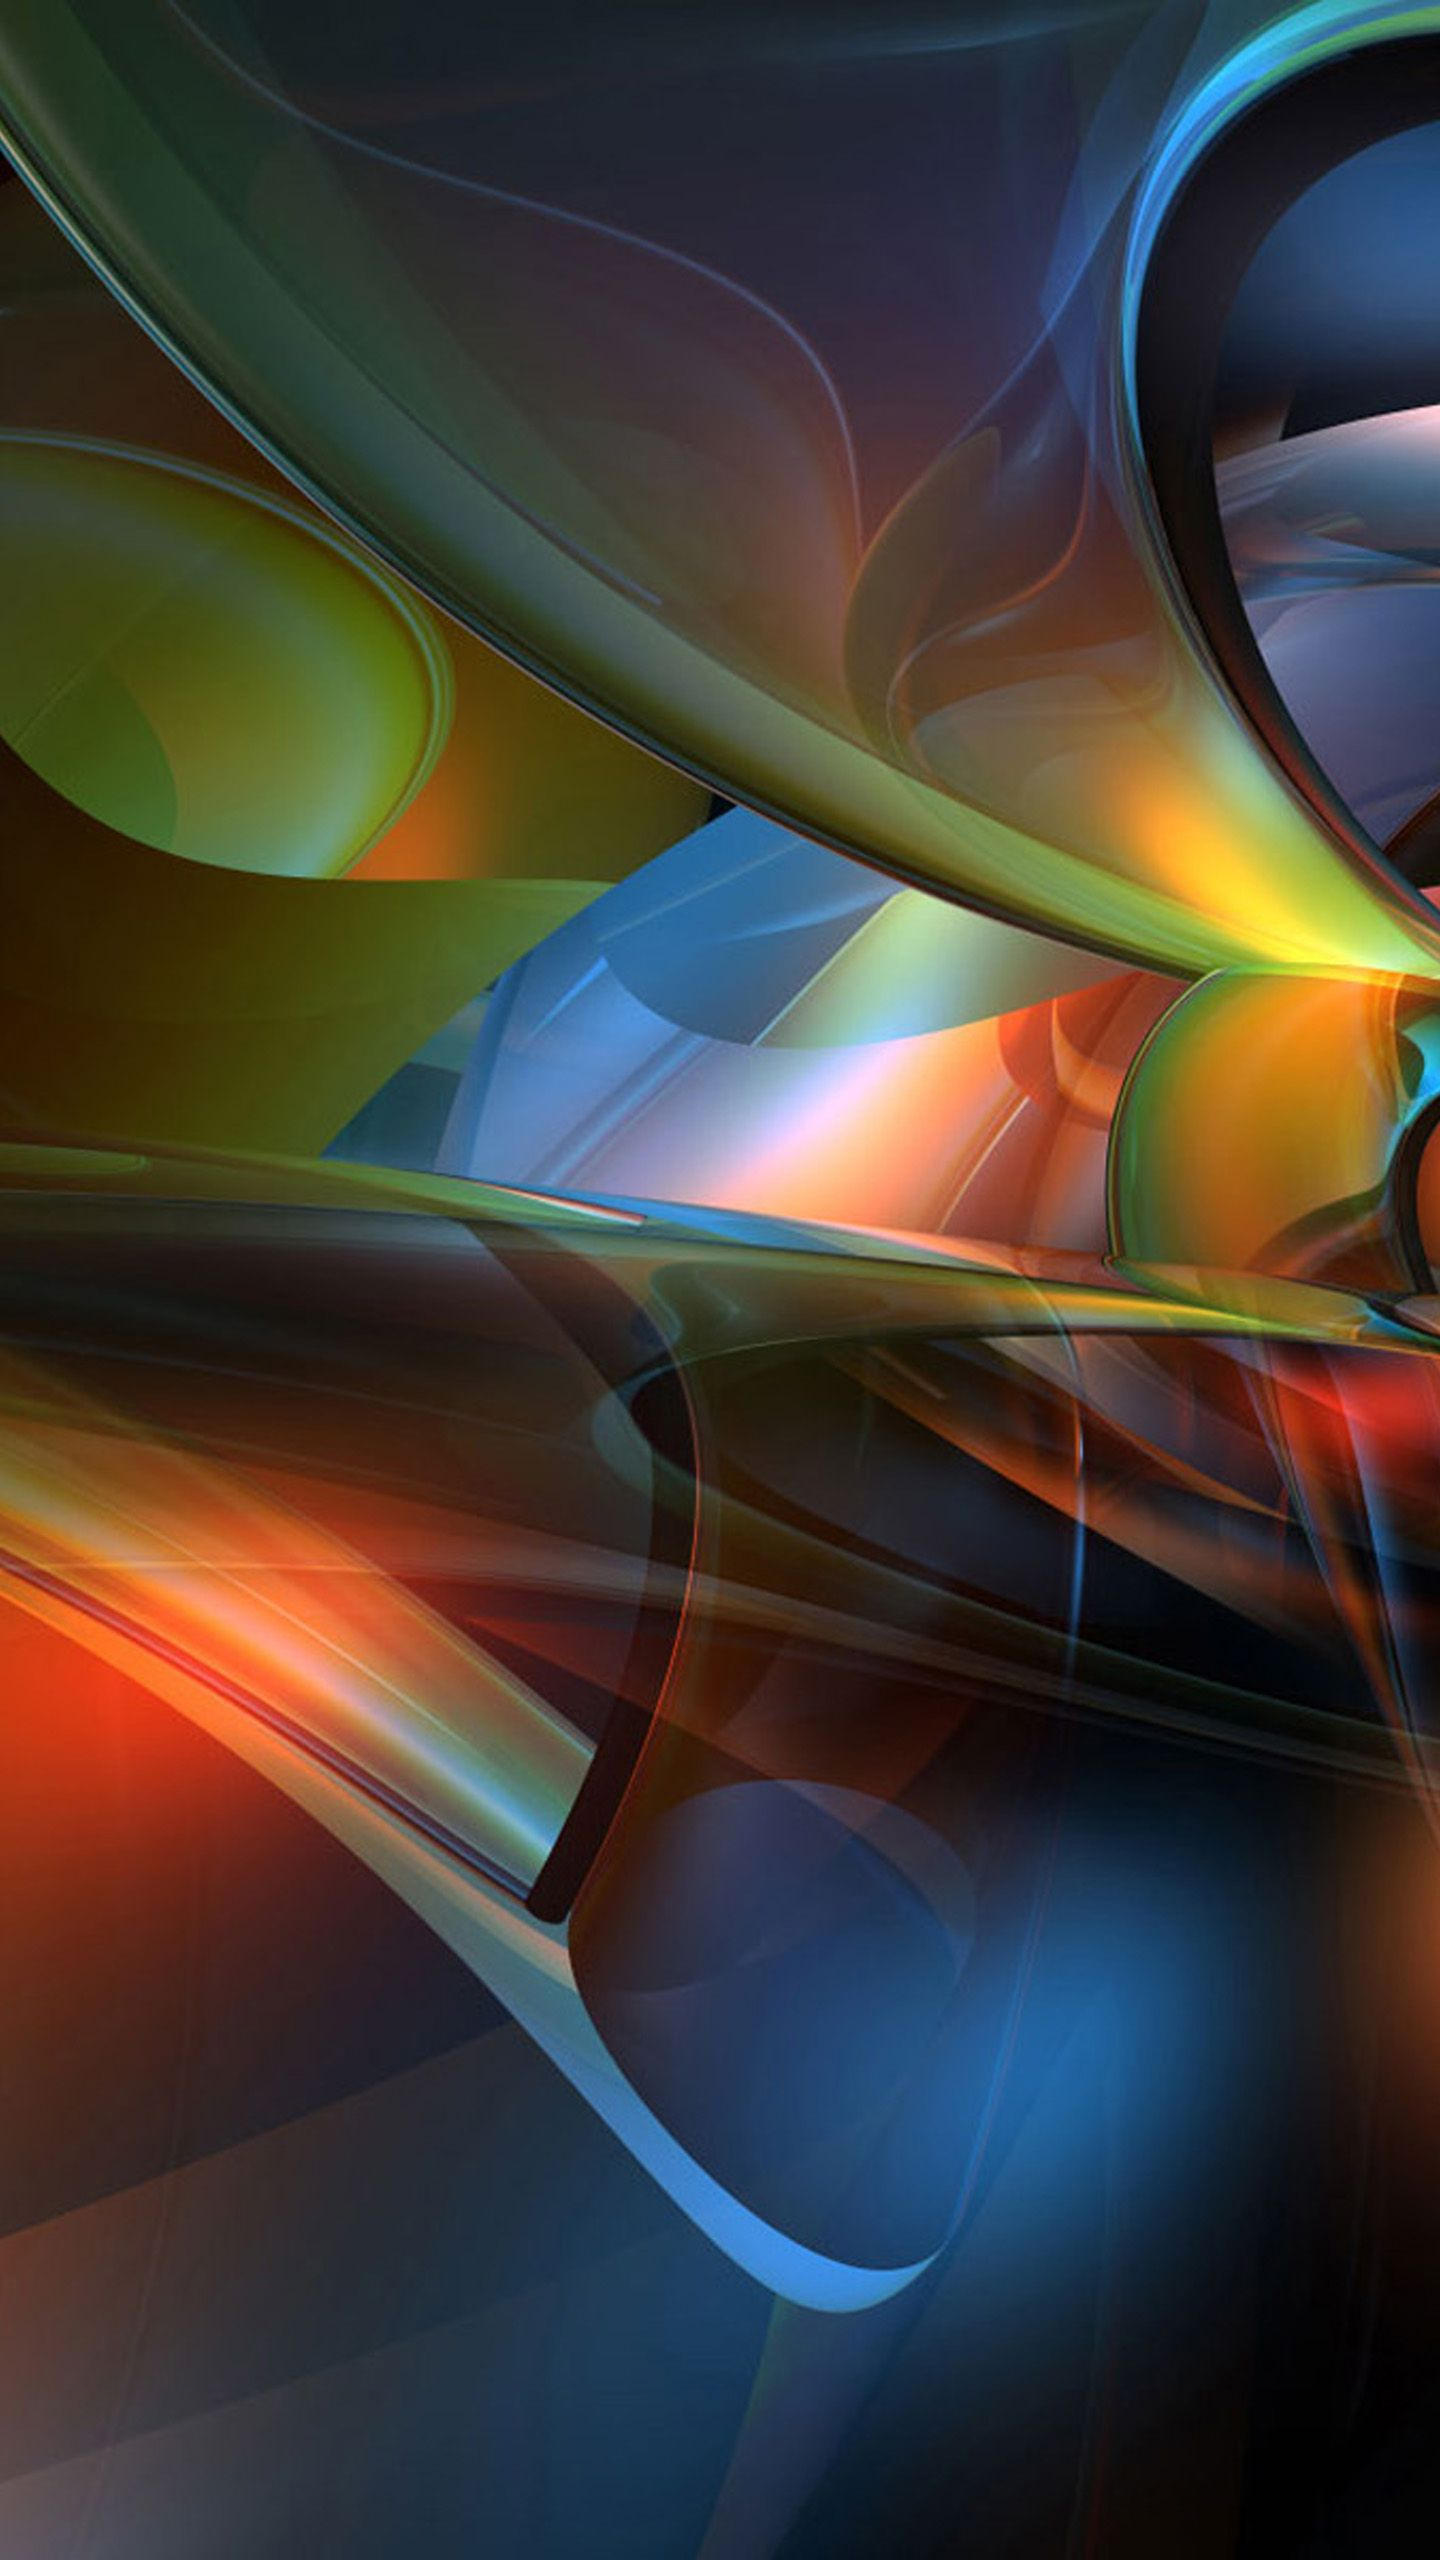 3d Abstract Mobile Phone Wallpaper http   wallpapers and backgrounds     3d Abstract Mobile Phone Wallpaper http   wallpapers and backgrounds net 3d  abstract mobile phone wallpaper